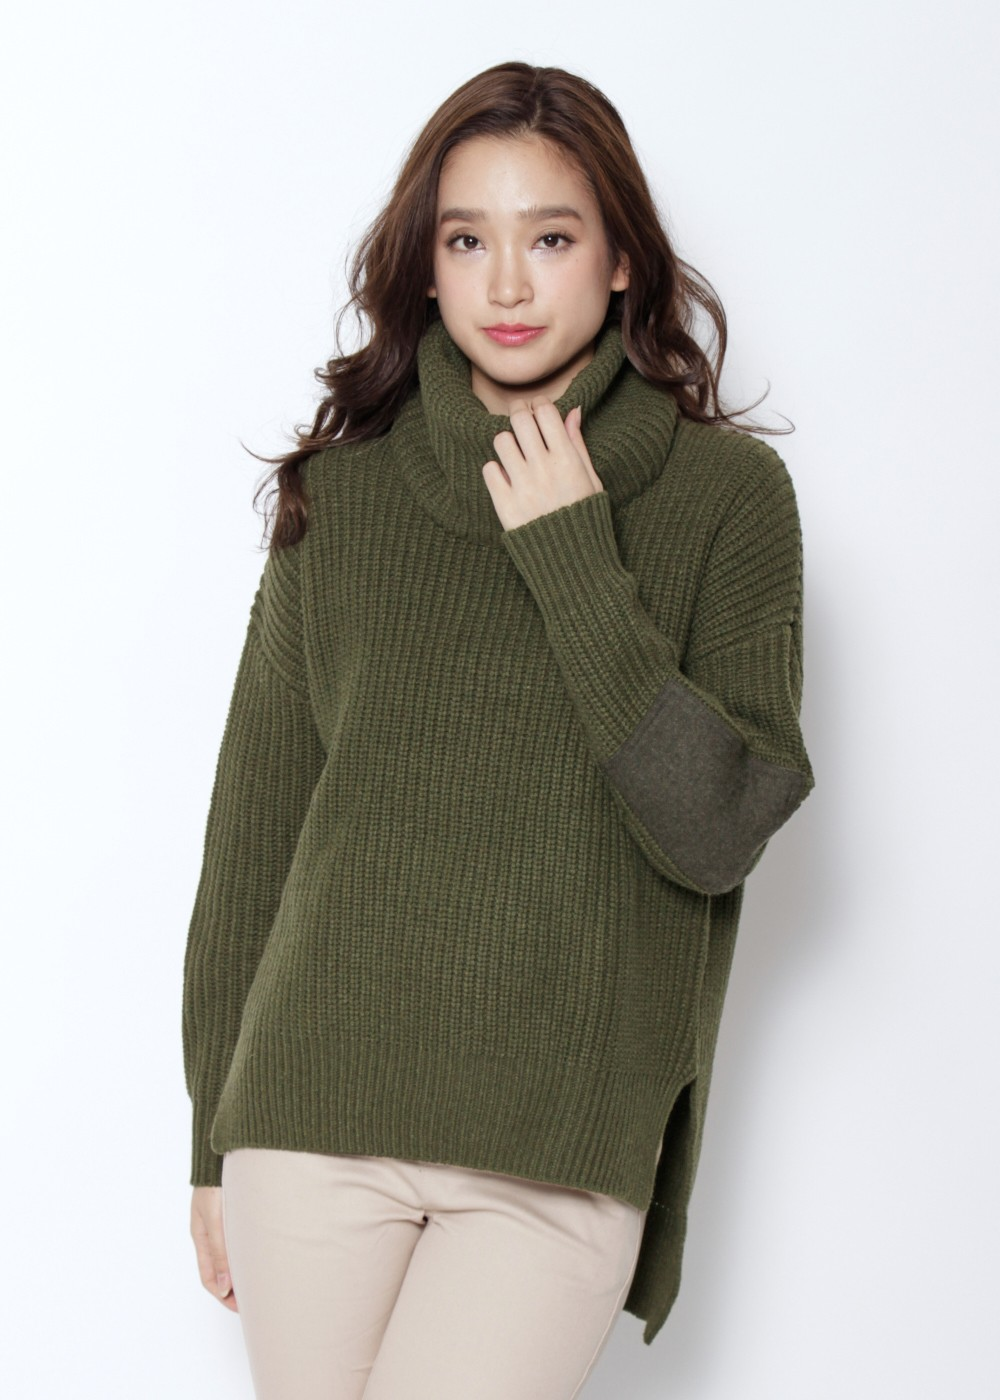 【最大80%OFF】3WAYBIGニット|KHAKI|ニット|URBAN RESEARCH warehouse Tops&Outer